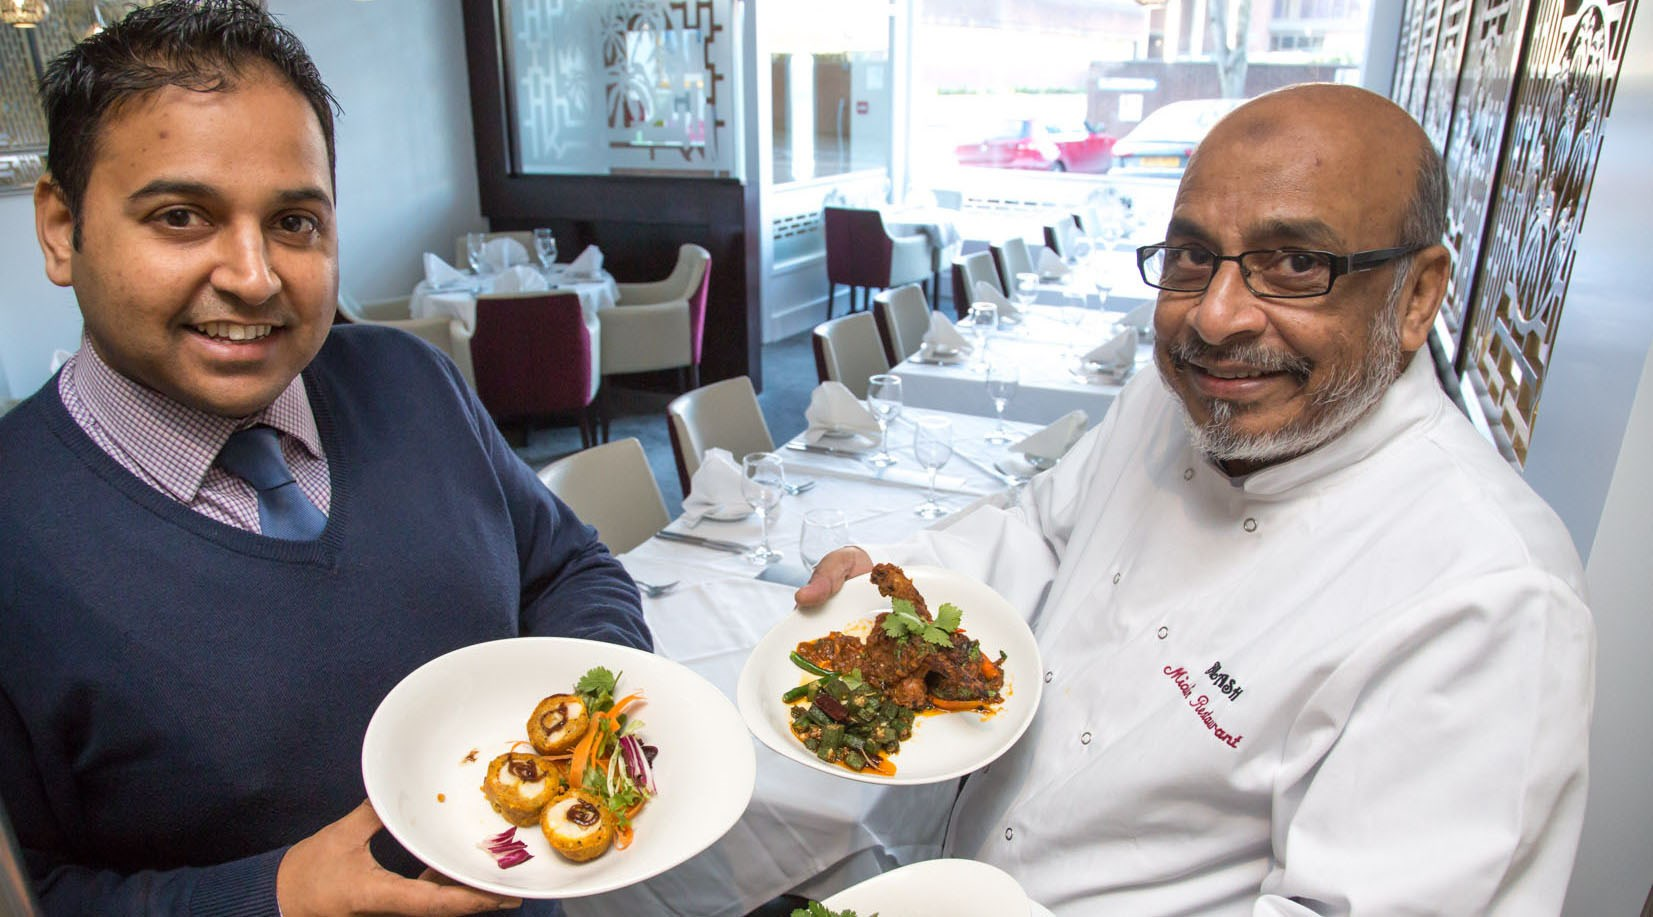 Bilash serves up 35 years of putting Wolverhampton on the national Curry map